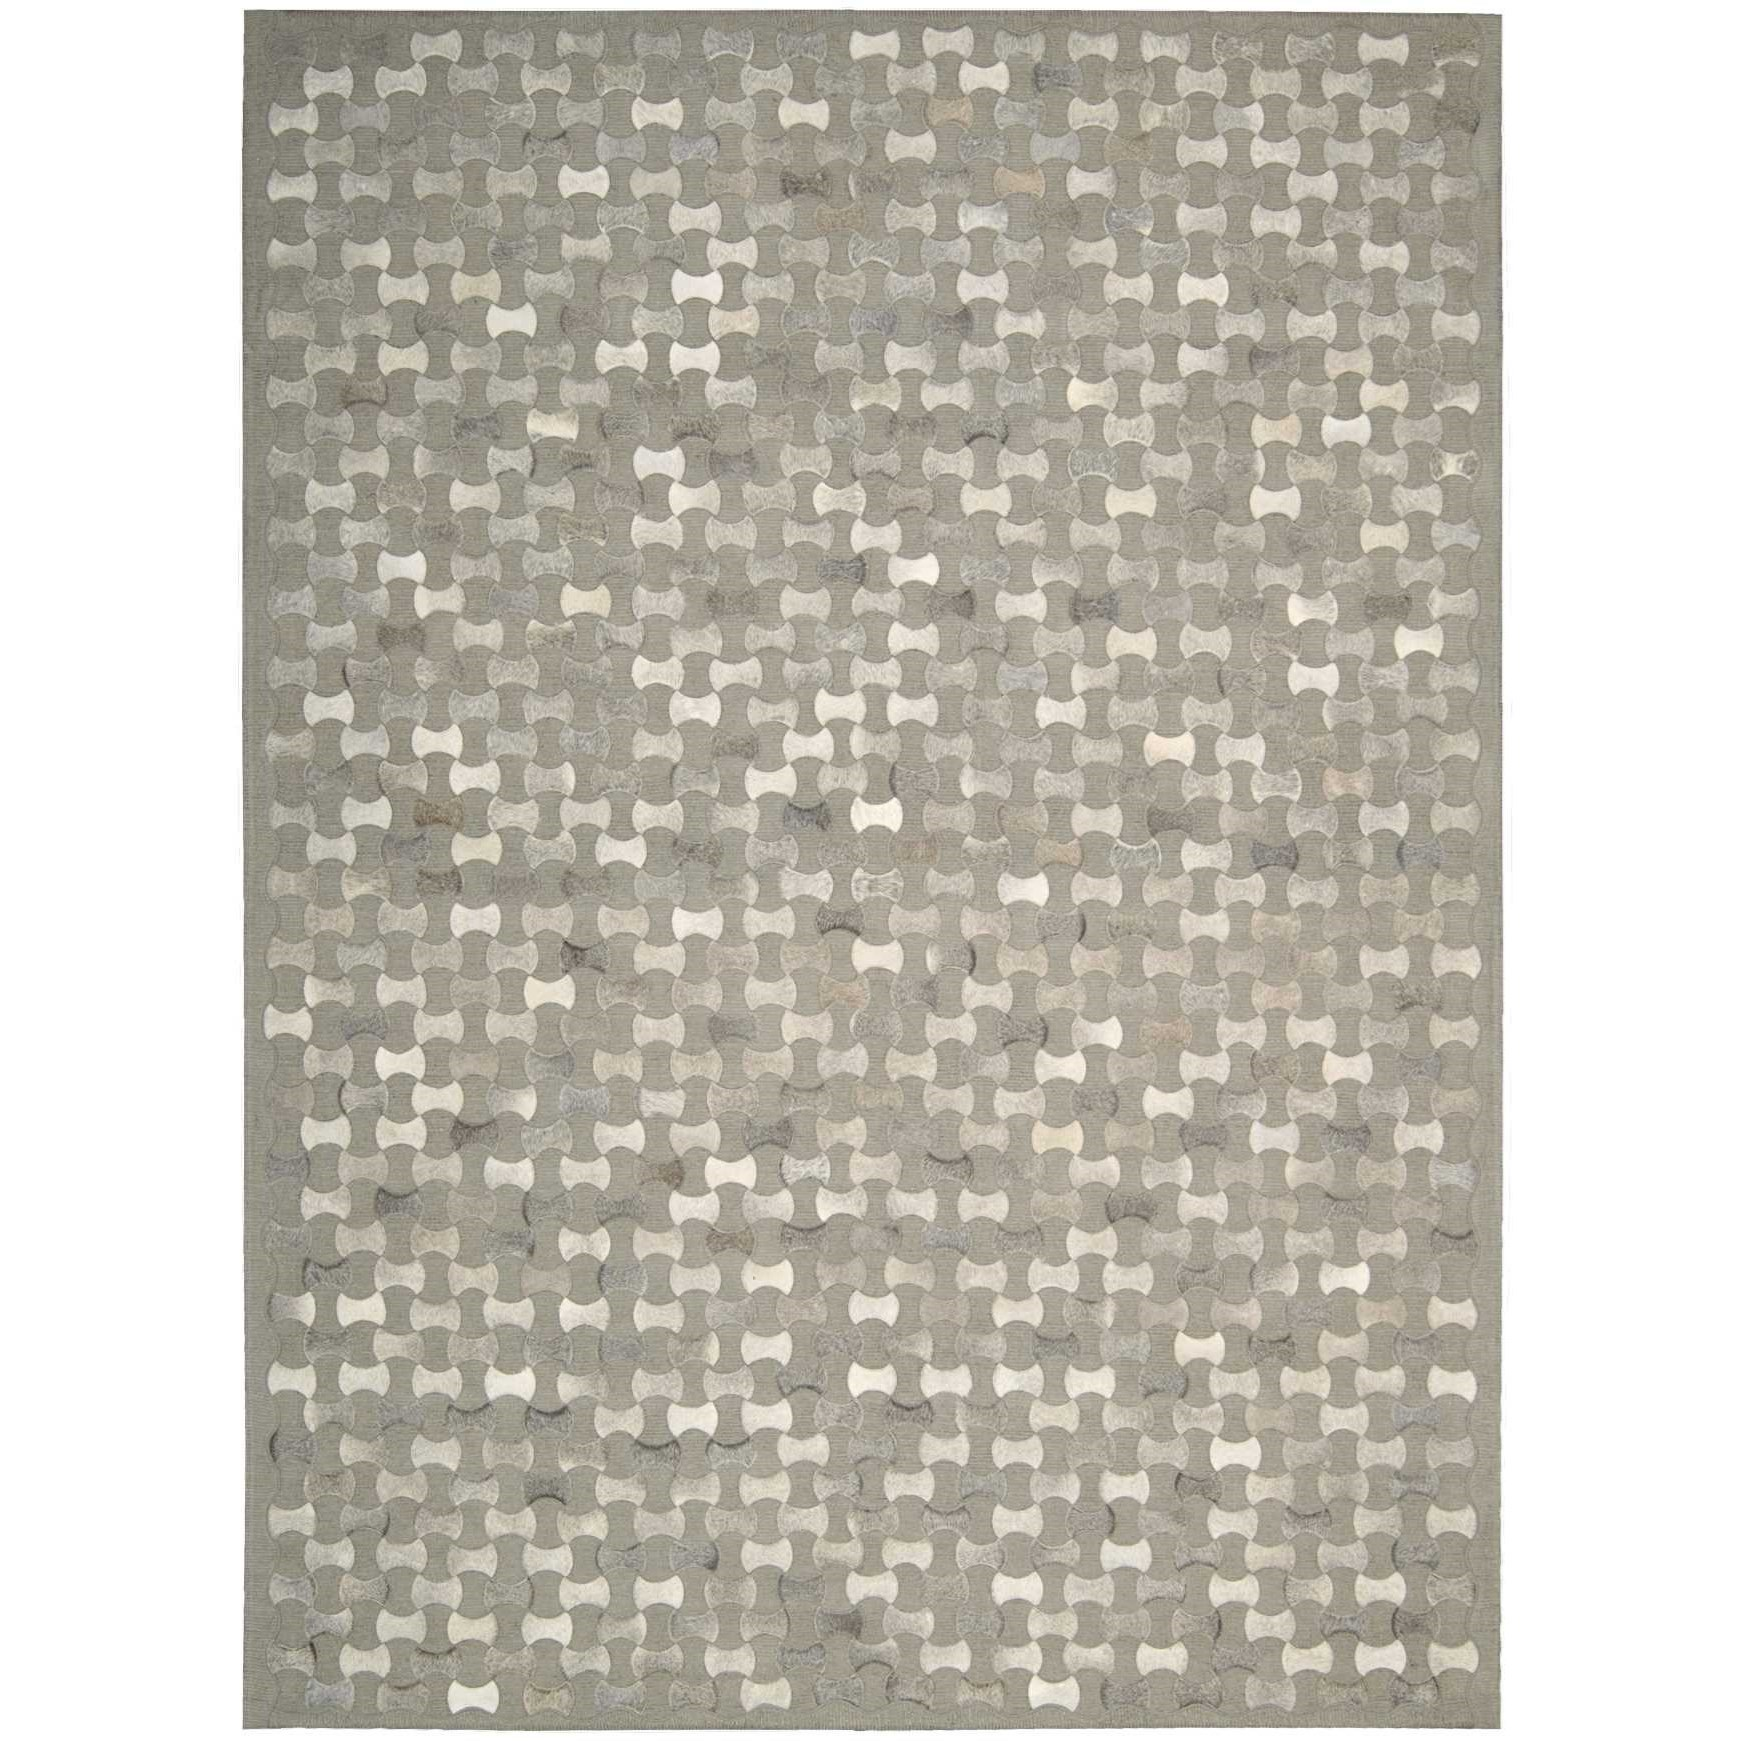 Chicago 8' x 11' Rug by Joseph Abboud by Nourison at Home Collections Furniture